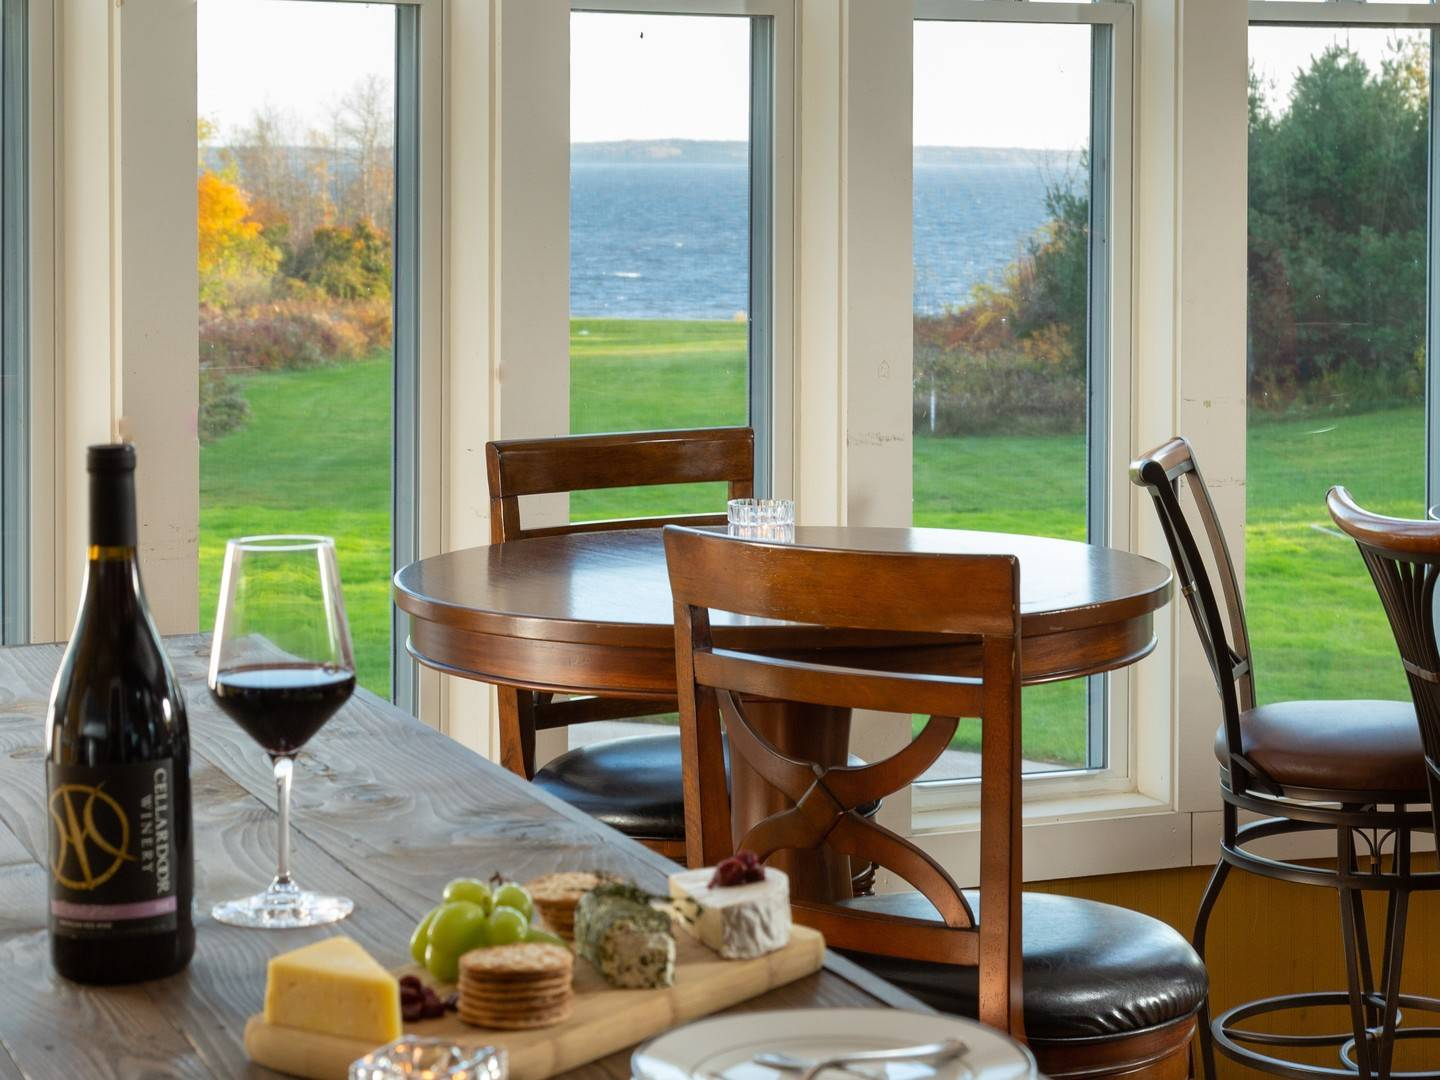 Searsport Bed and Breakfast